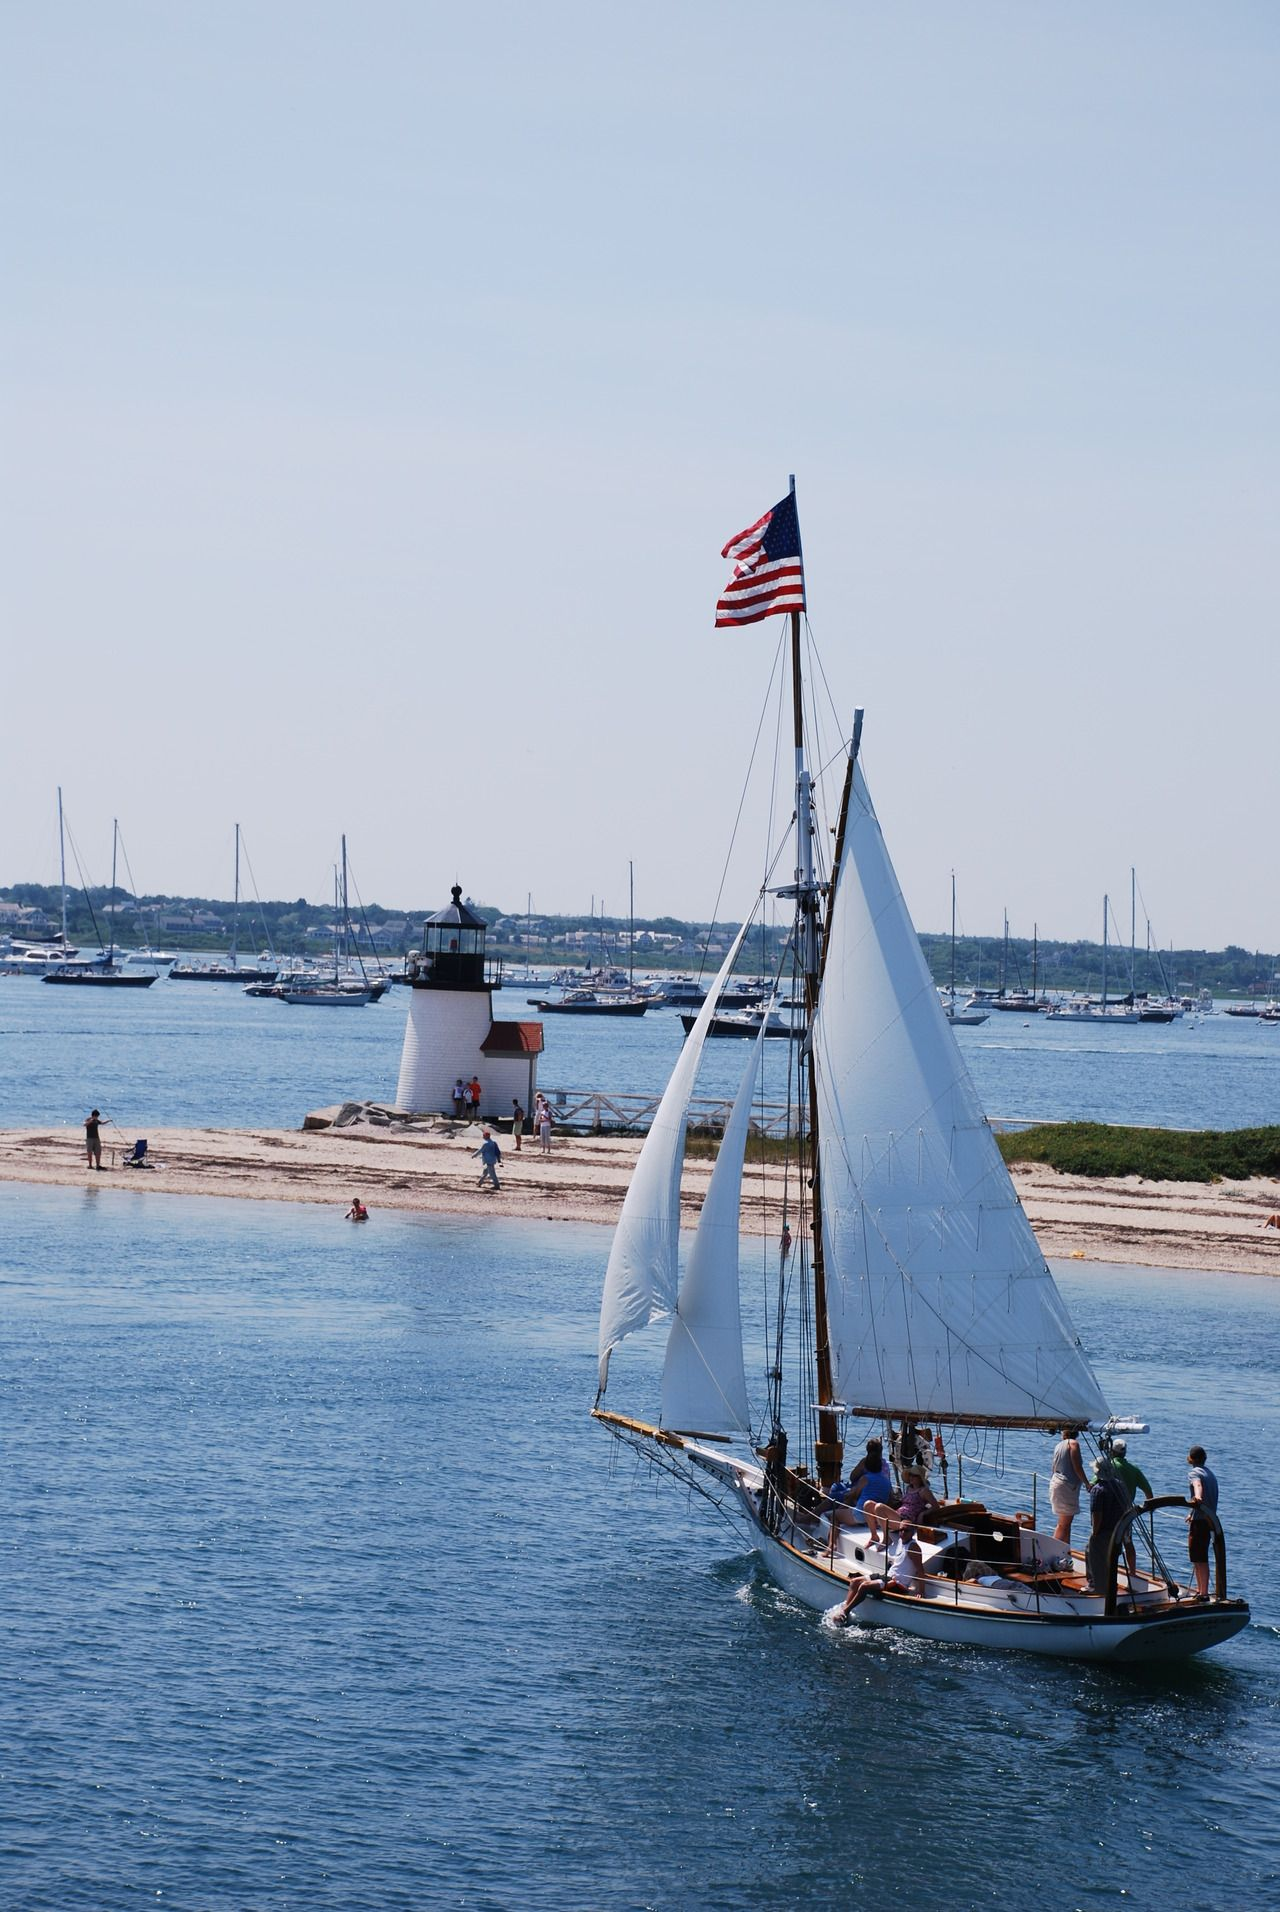 Old Glory waves in the breeze atop a sailboat in Nantucket